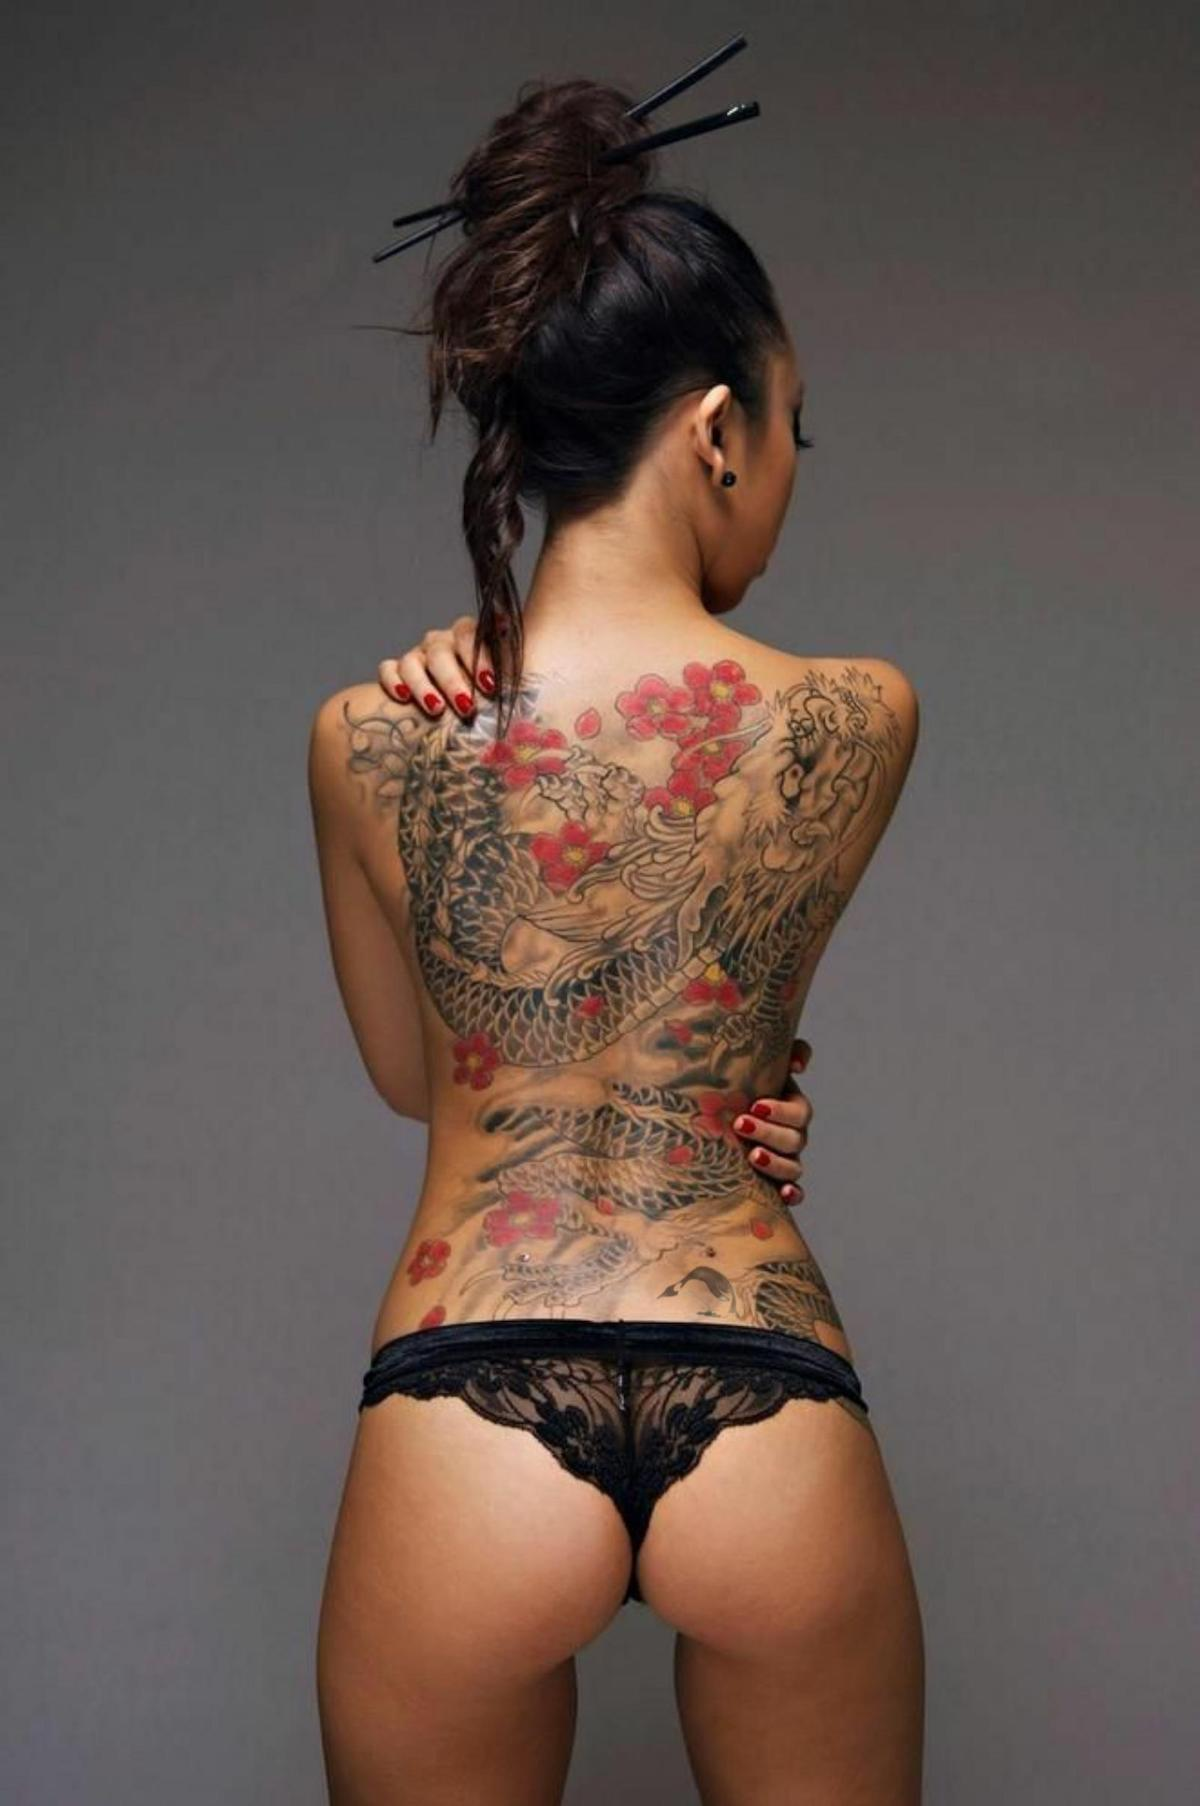 Oriental dragon in the sakura blossom tattoo on the girl's back